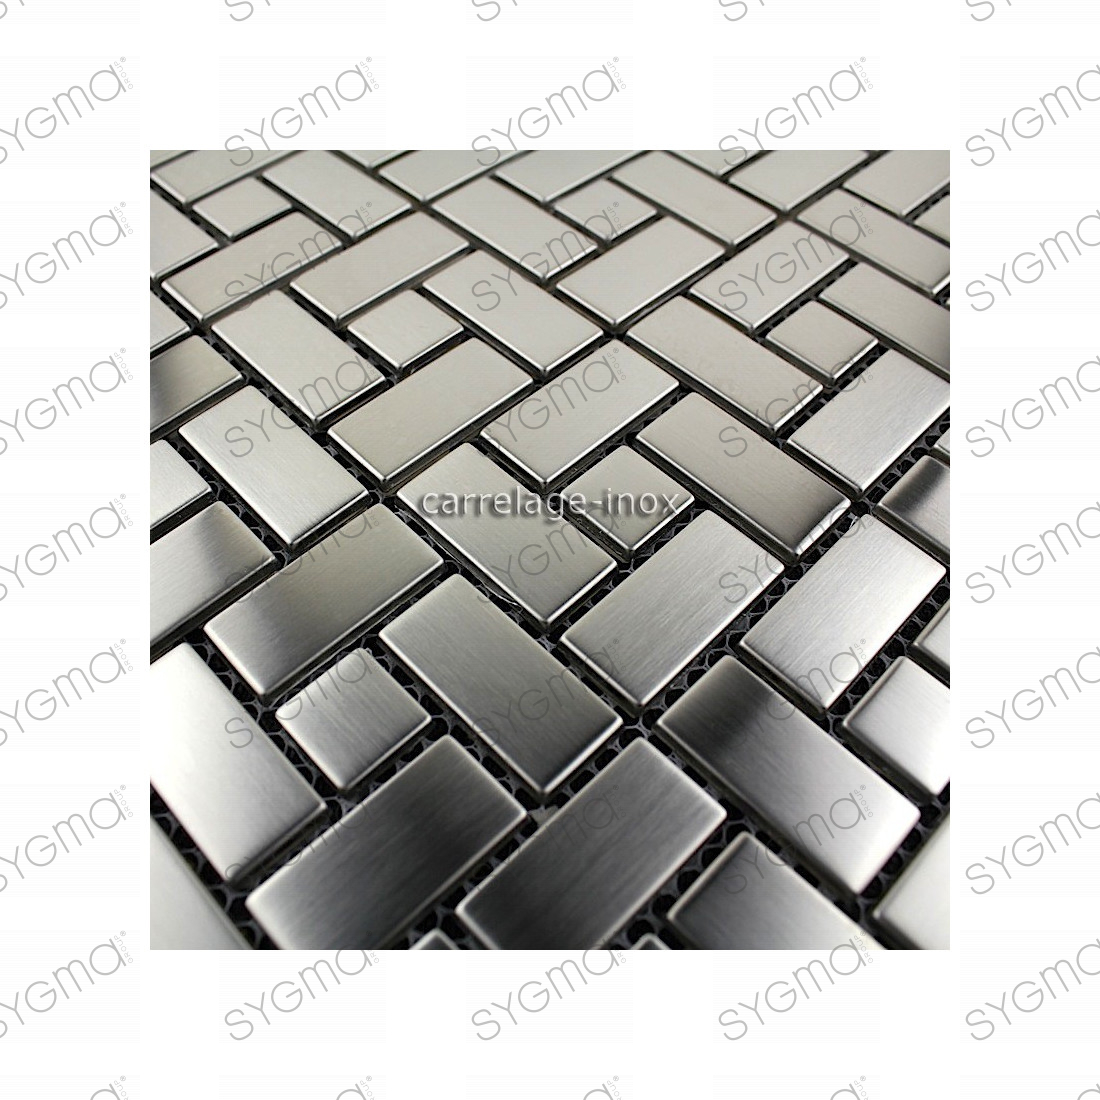 Mosaique inox carrelage faience credence loft for Mosaique carrelage